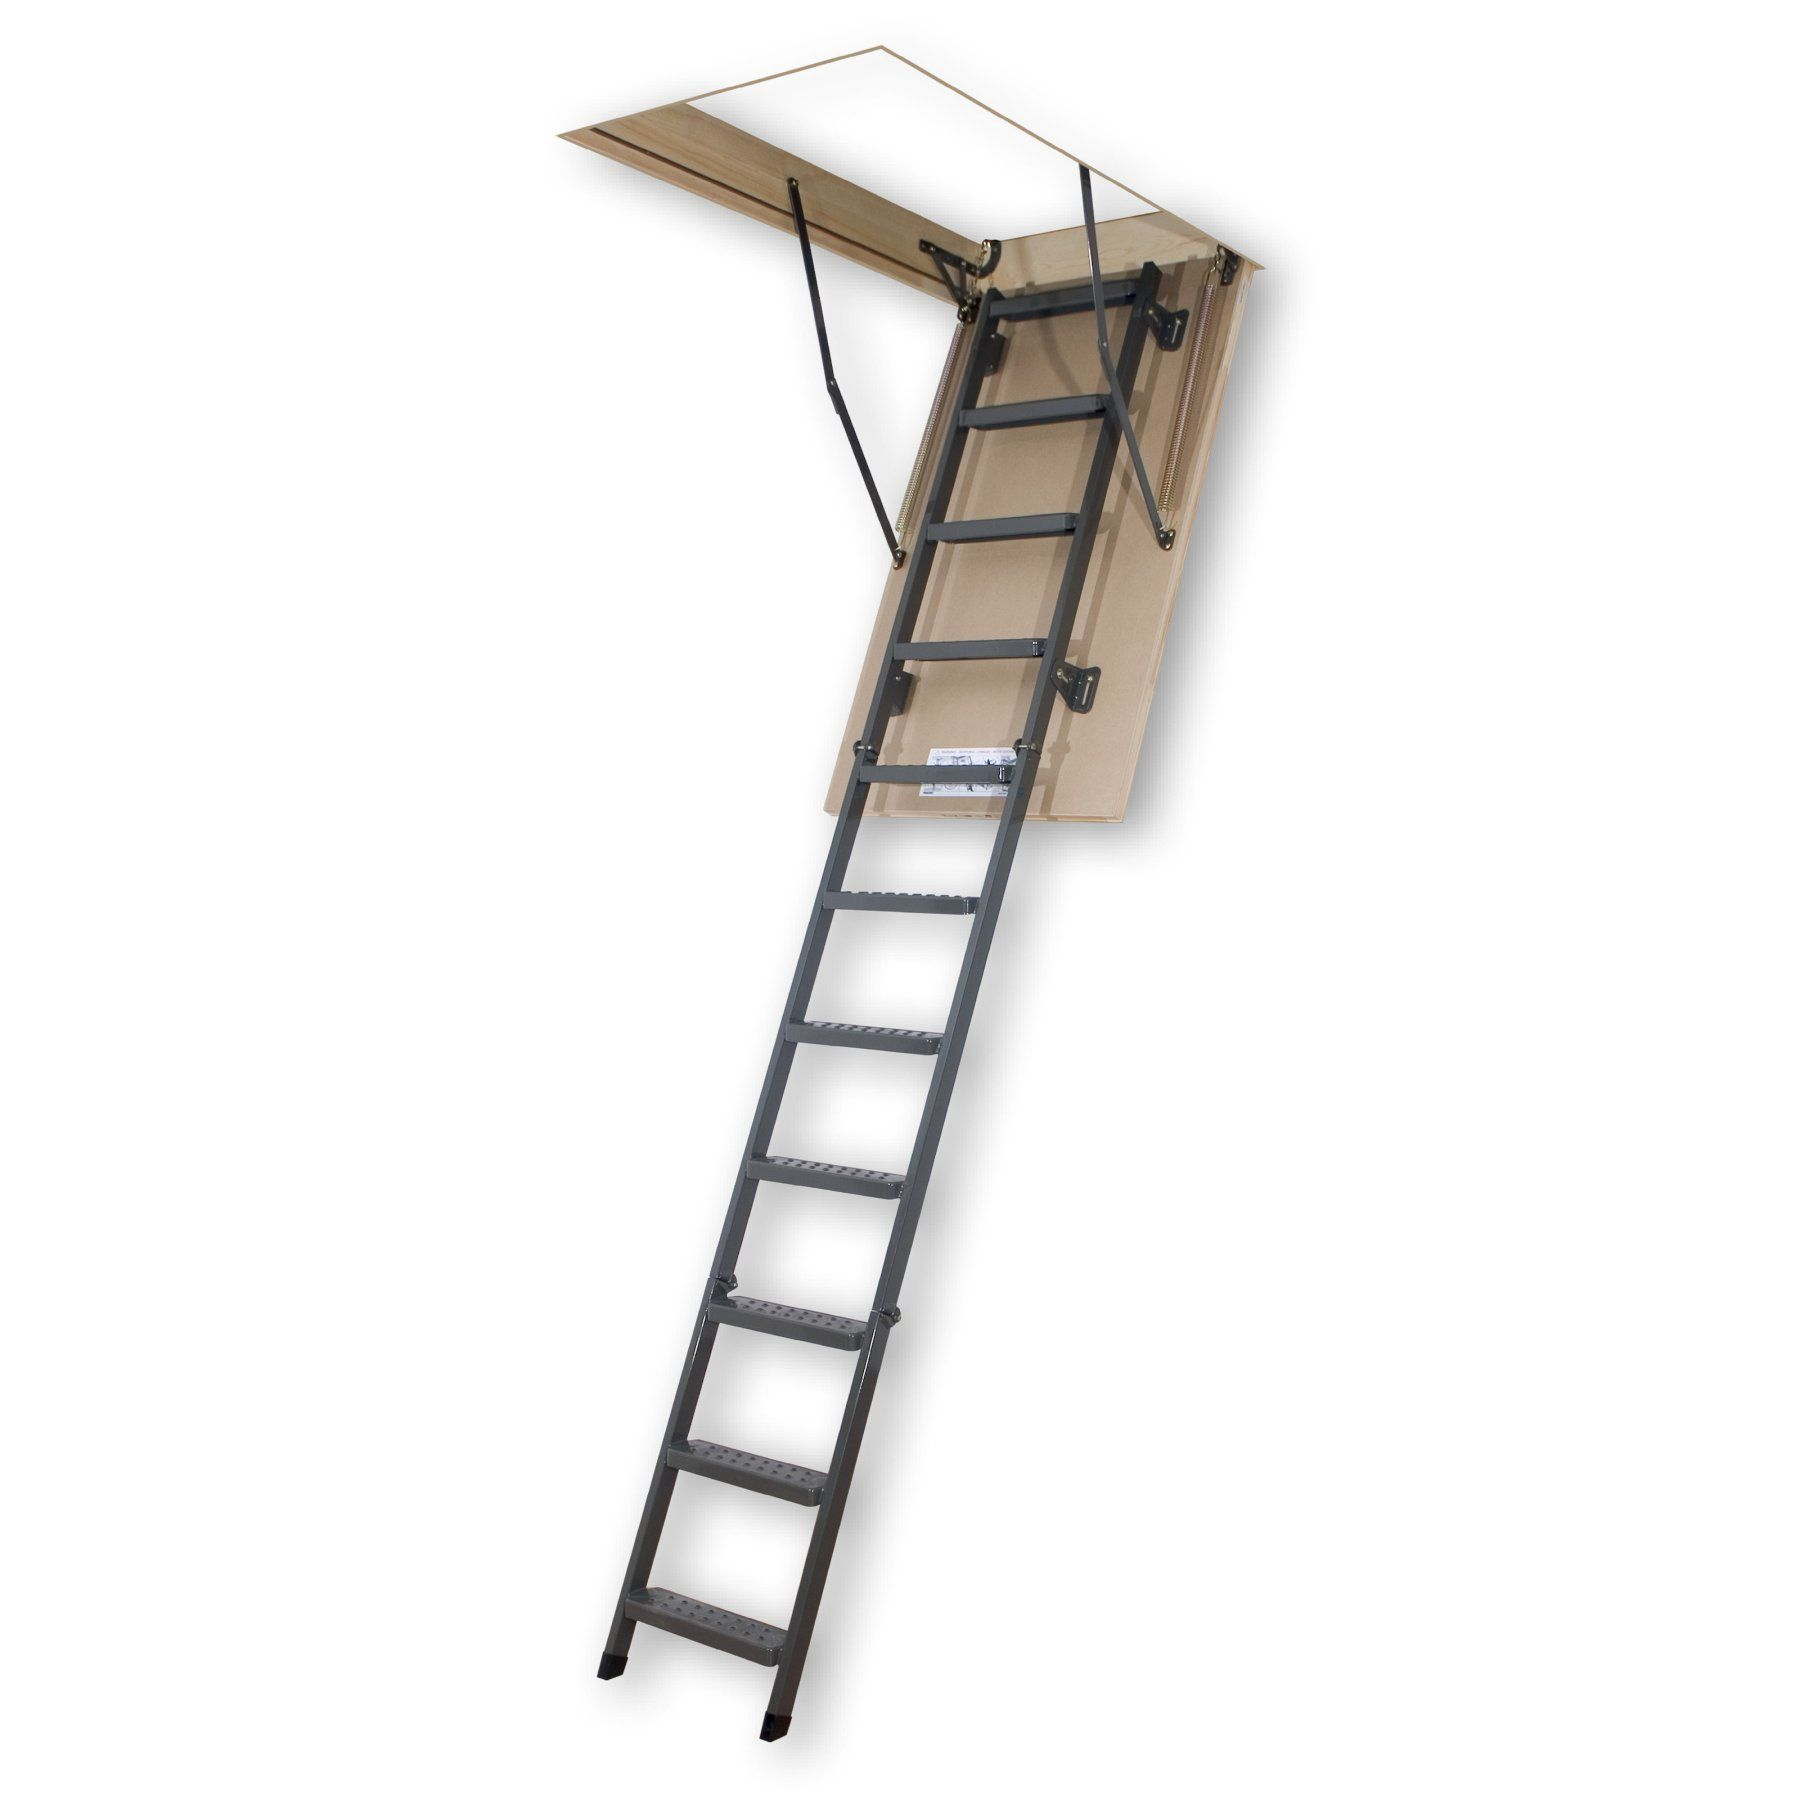 Fakro 810 ft insulated steel attic ladder 66865